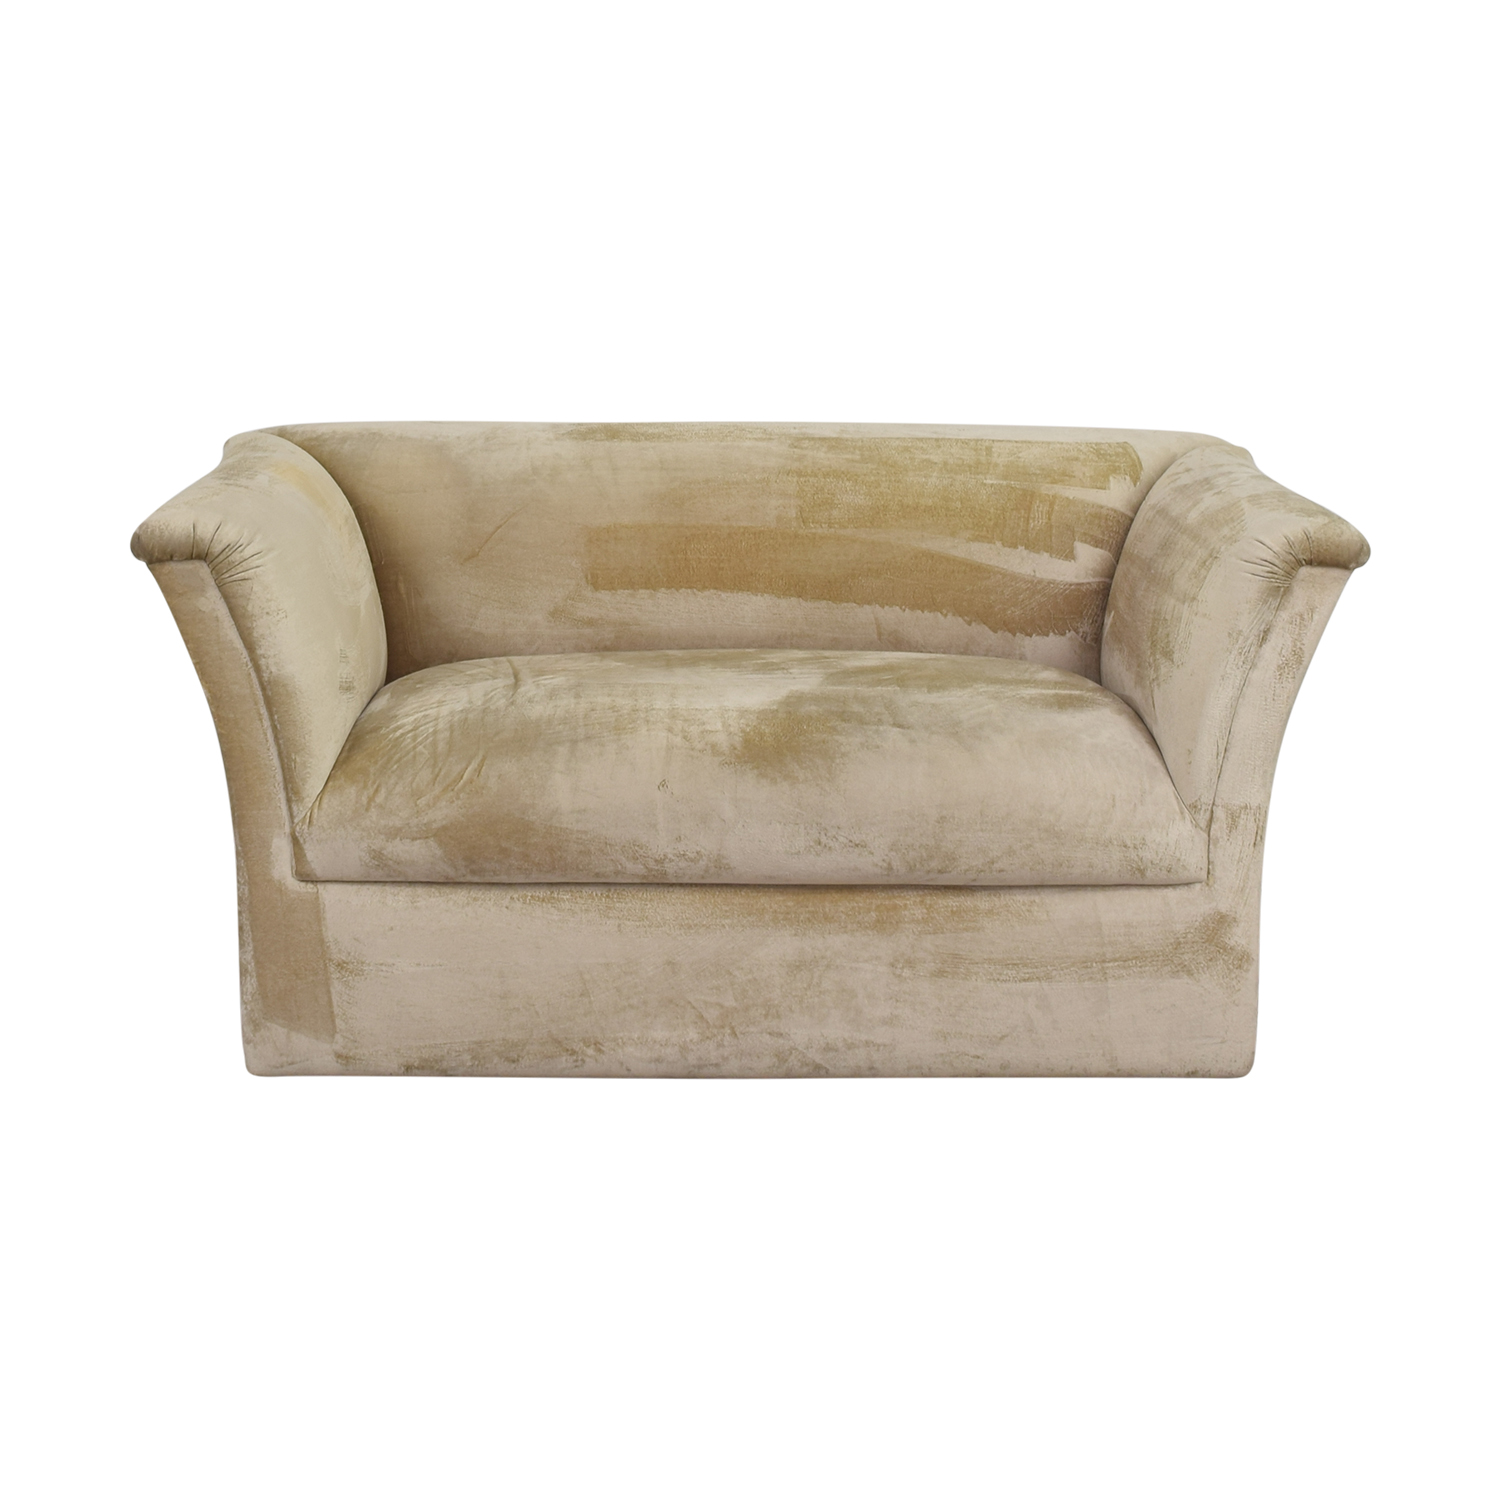 J Robert Scott J Robert Scott Beige Brushed Velvet Loveseat tan